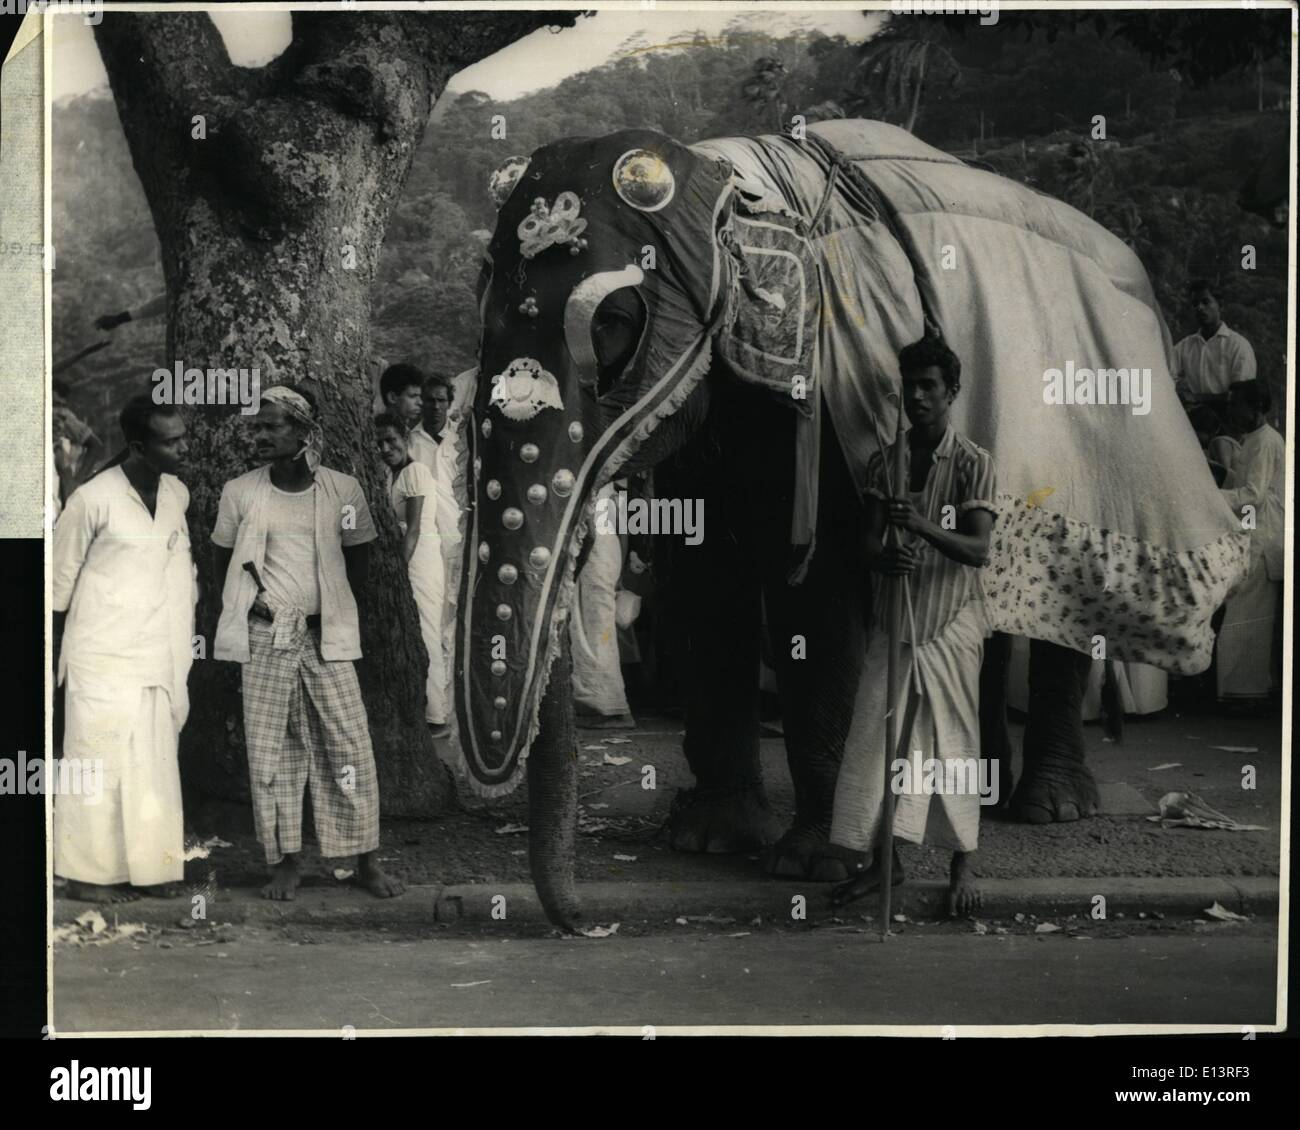 Mar. 27, 2012 - Ceylon Caption for photo, marked A: Last week/while the midnight procession of 120 tusker elephants in the world famous Kandy Perahera wended its way trough decorated streets of Ceylon's hill capital and tea-growing district, this caperisoned baby elephant who was unable to bear the glare of TV cameras and the glowing lights focussed on it, broke loose from the rest of the tamed herd, stampeded through the milling crowd of devotees and fled into the nearby jungle - Stock Image